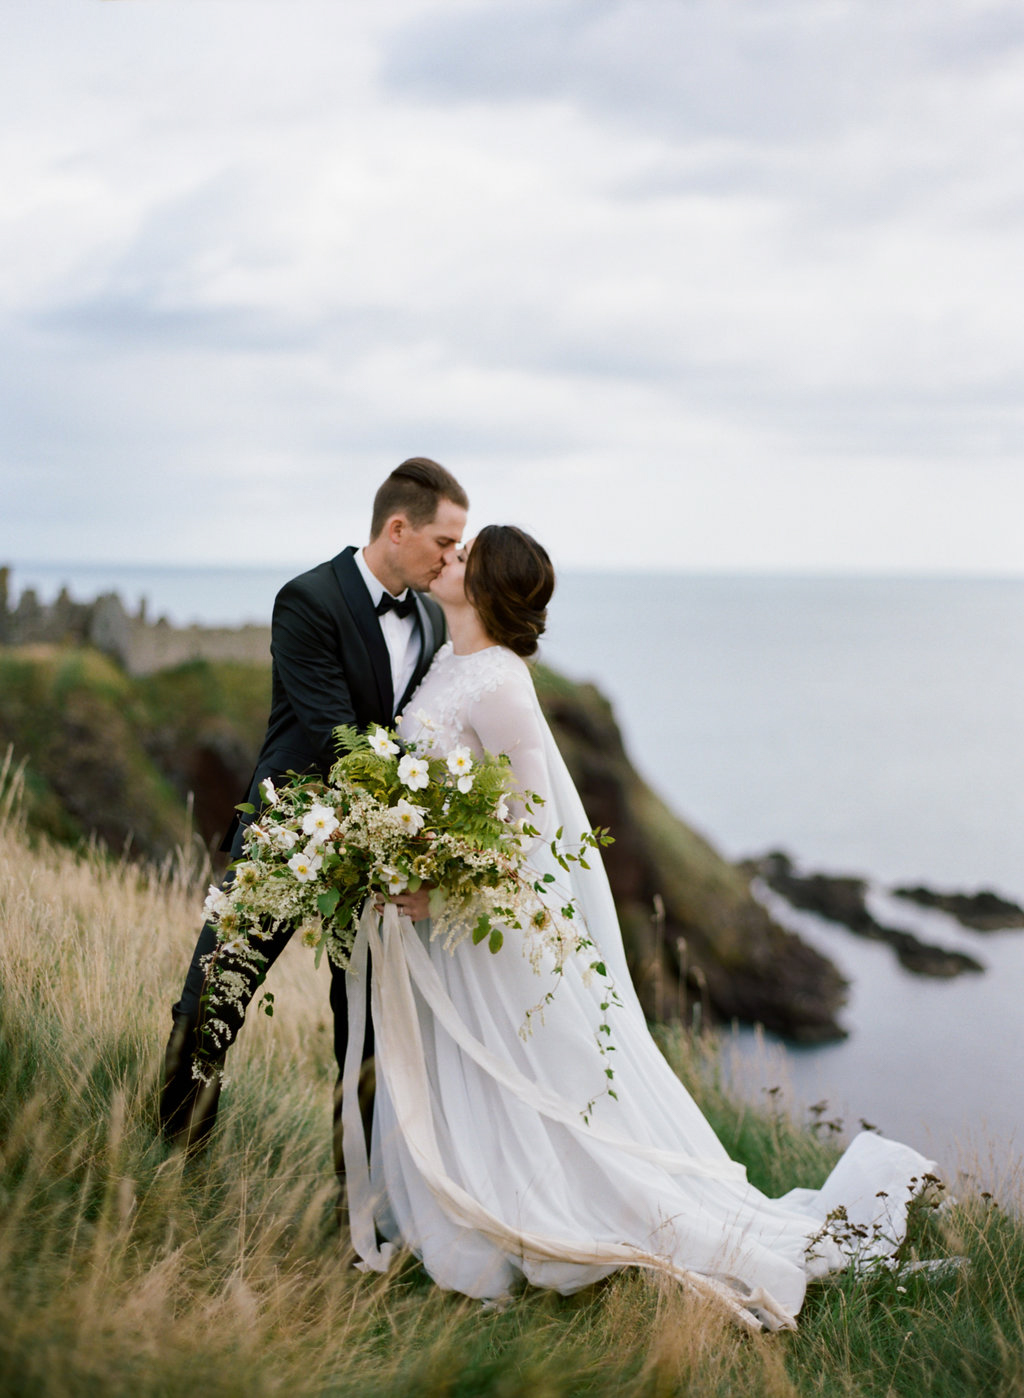 Scotland-Prewedding-highlands-castle-Engagment-Photos-Katie-Grant (87 of 139).jpg